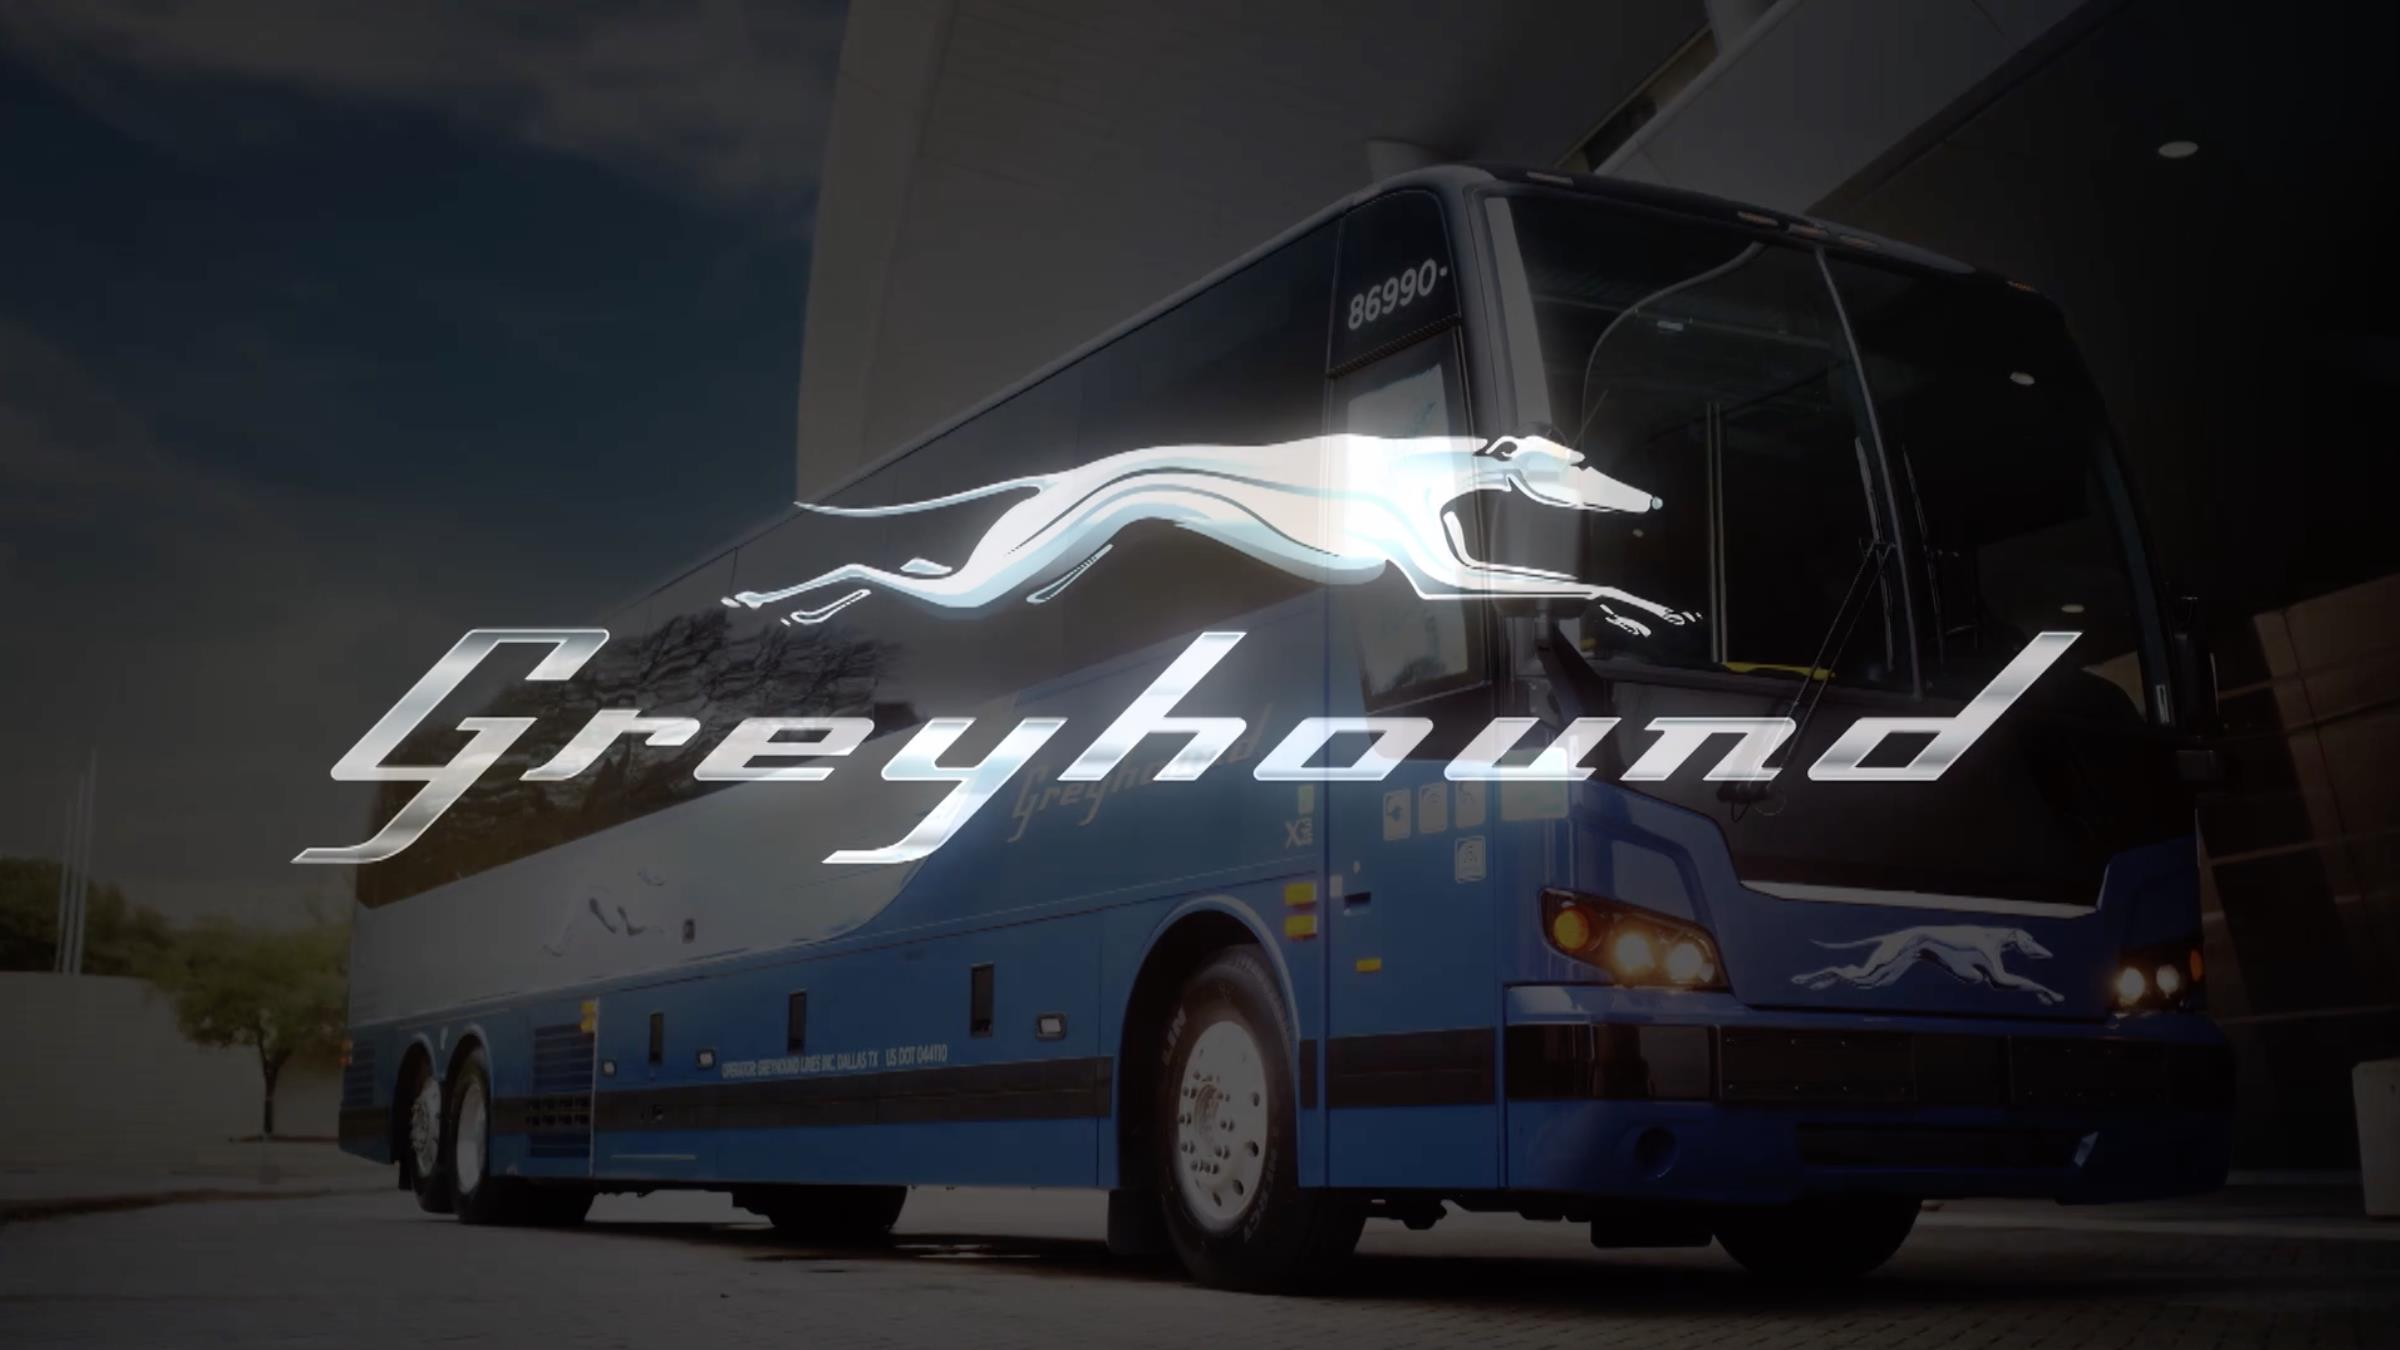 Greyhound 2020 Reel